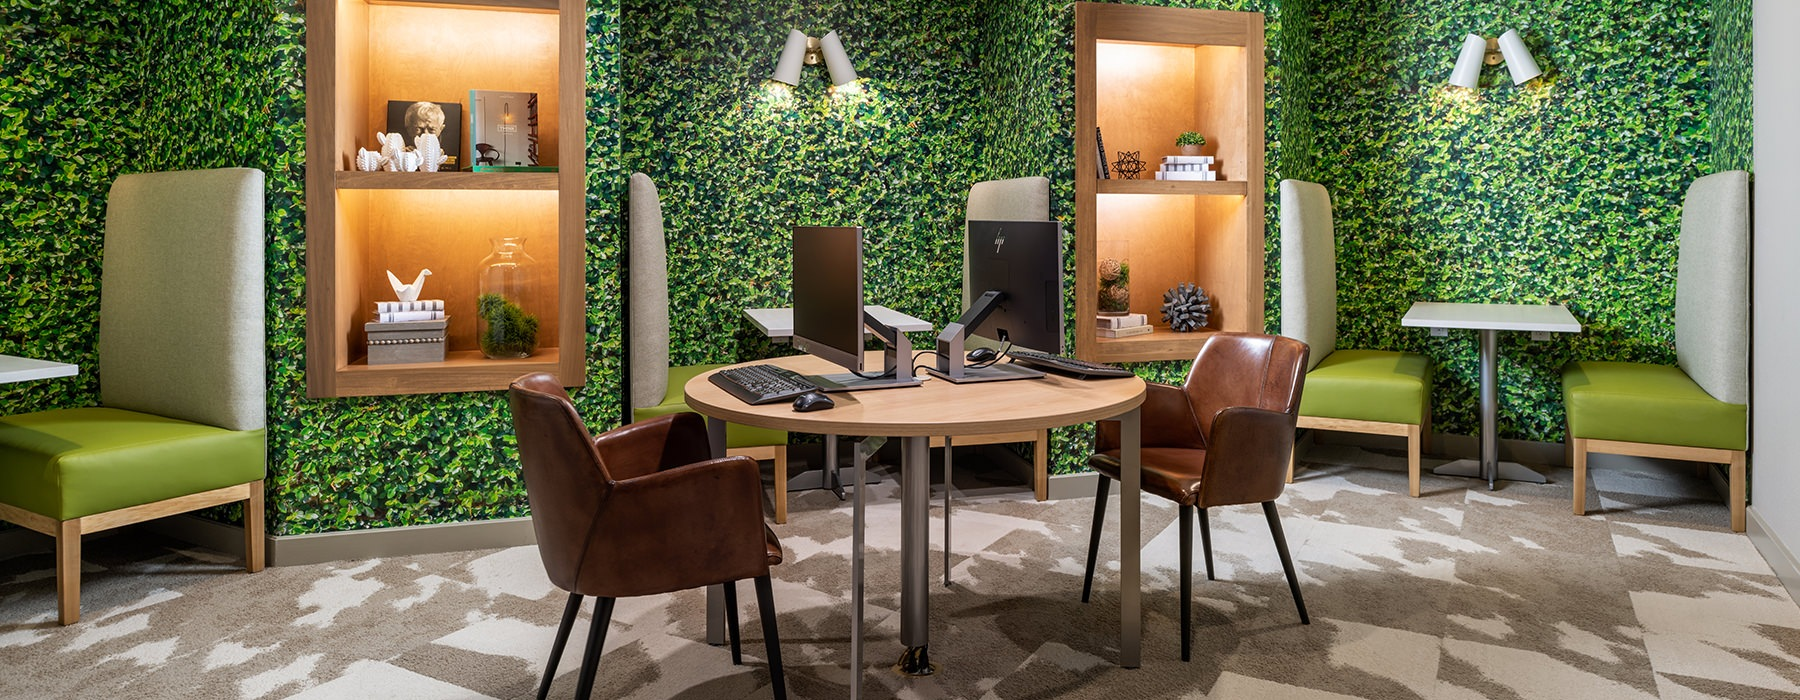 Spacious and well lit business center with floral wall accents